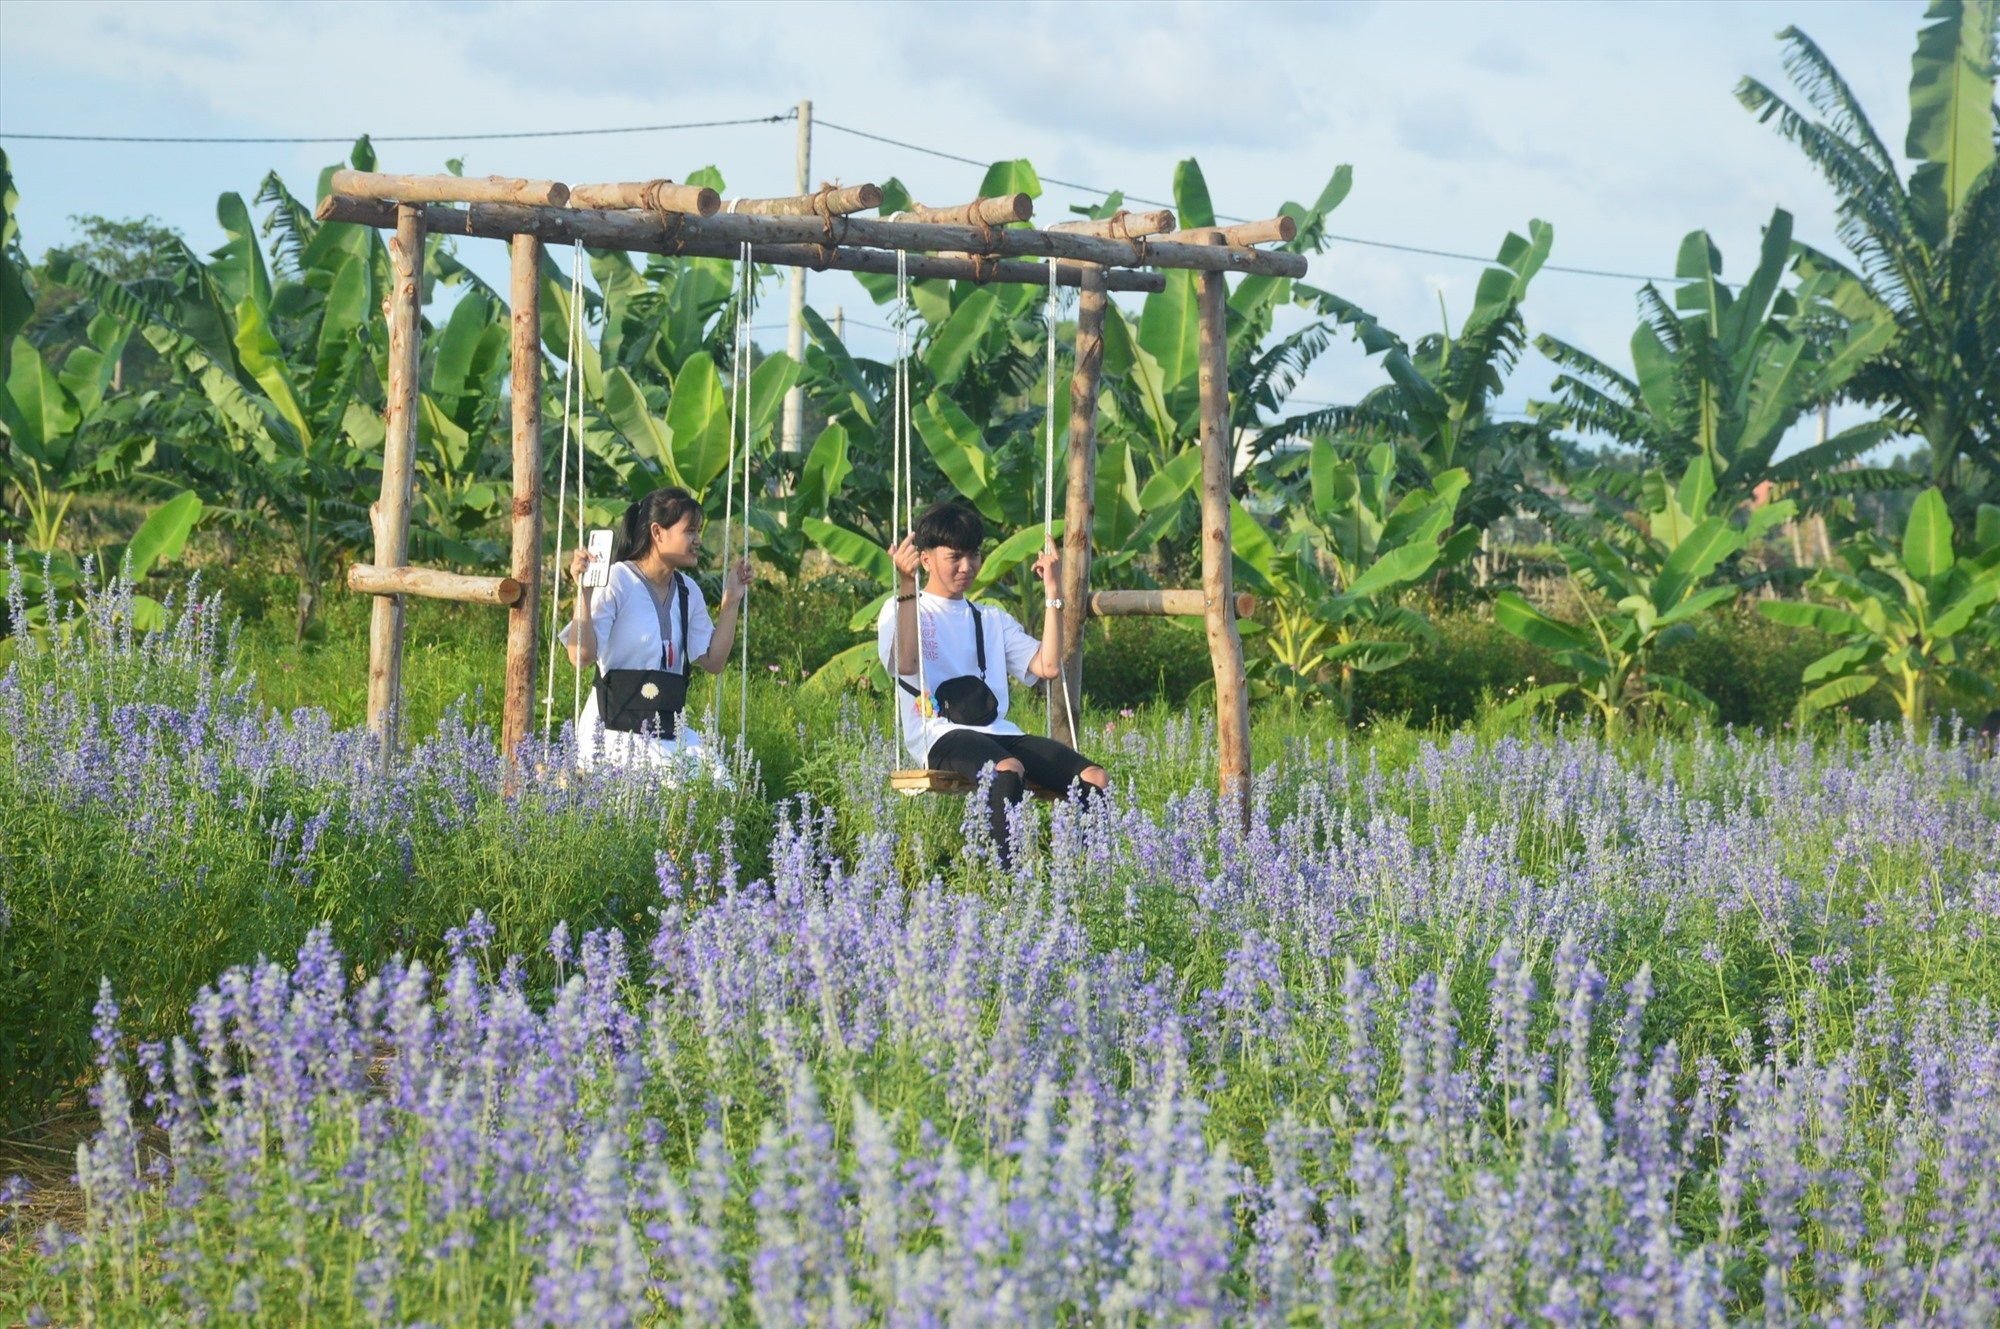 A beautiful landscape in the countryside in Quang Nam